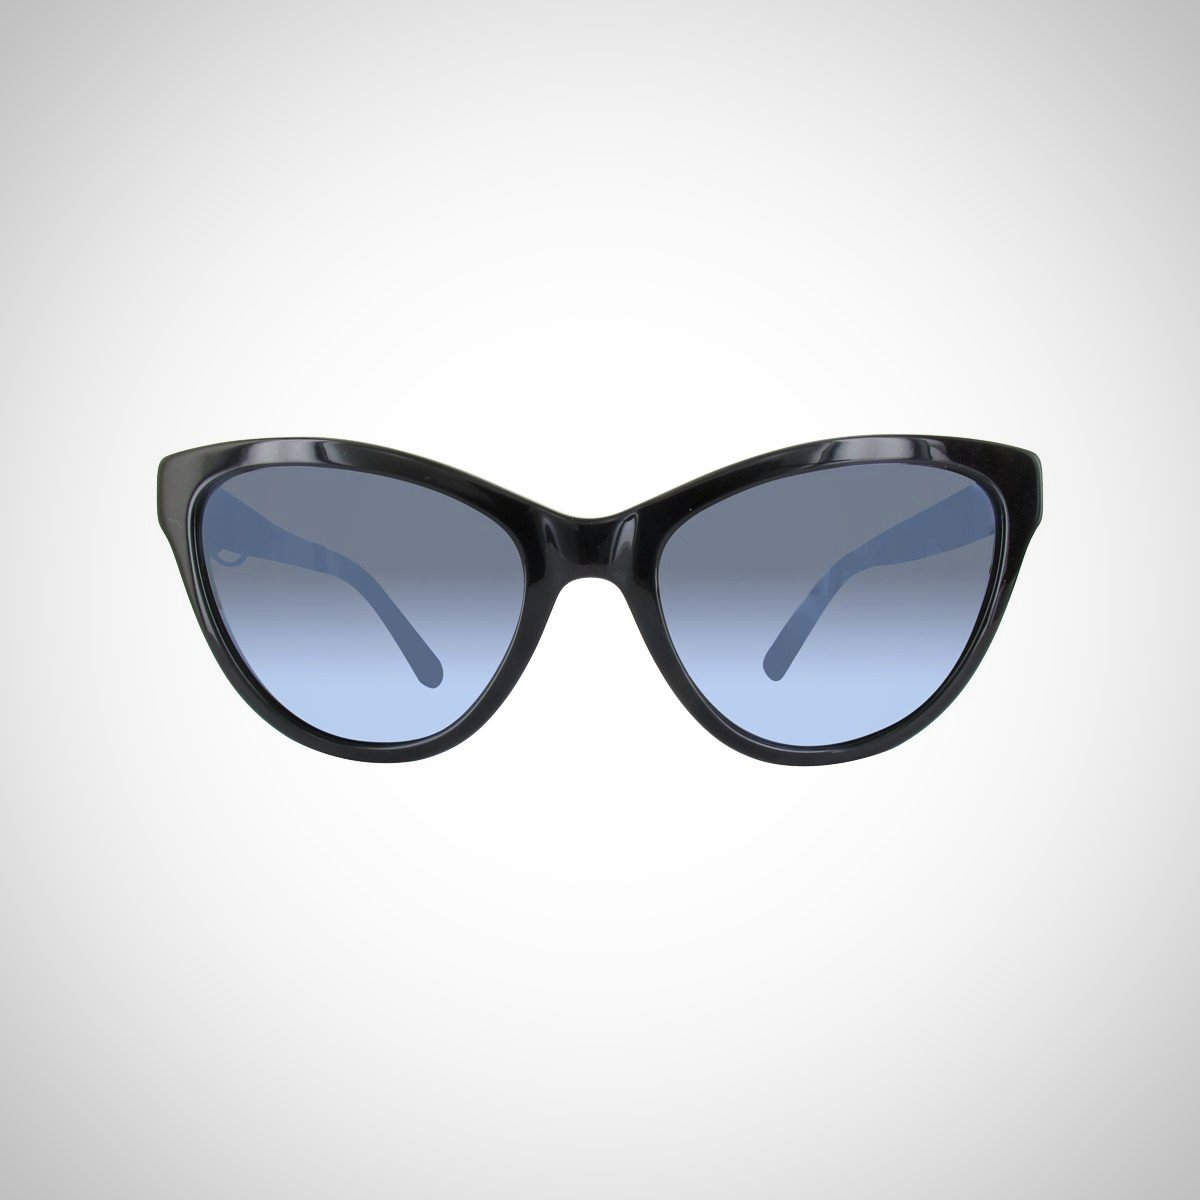 Kenzo KZ3194 C01-54 Ladies Blue Gradient Sunglasses